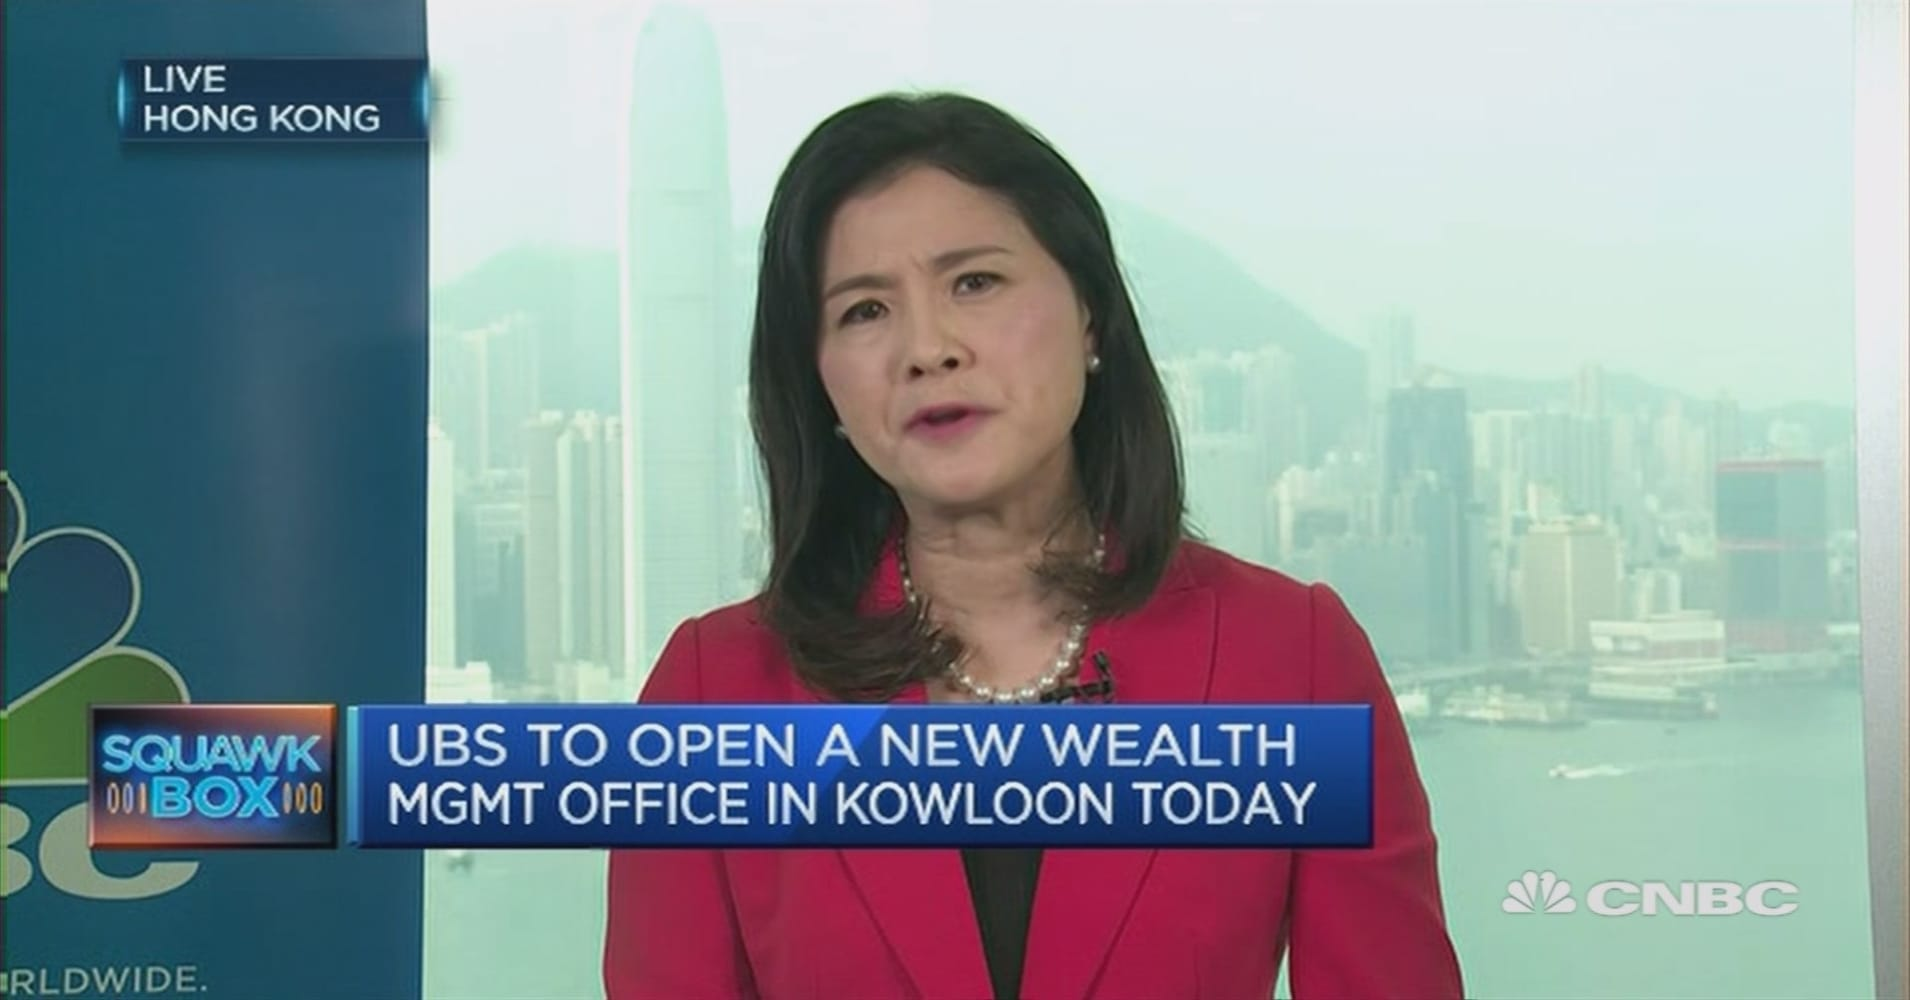 UBS sees opportunities in China's wealth management